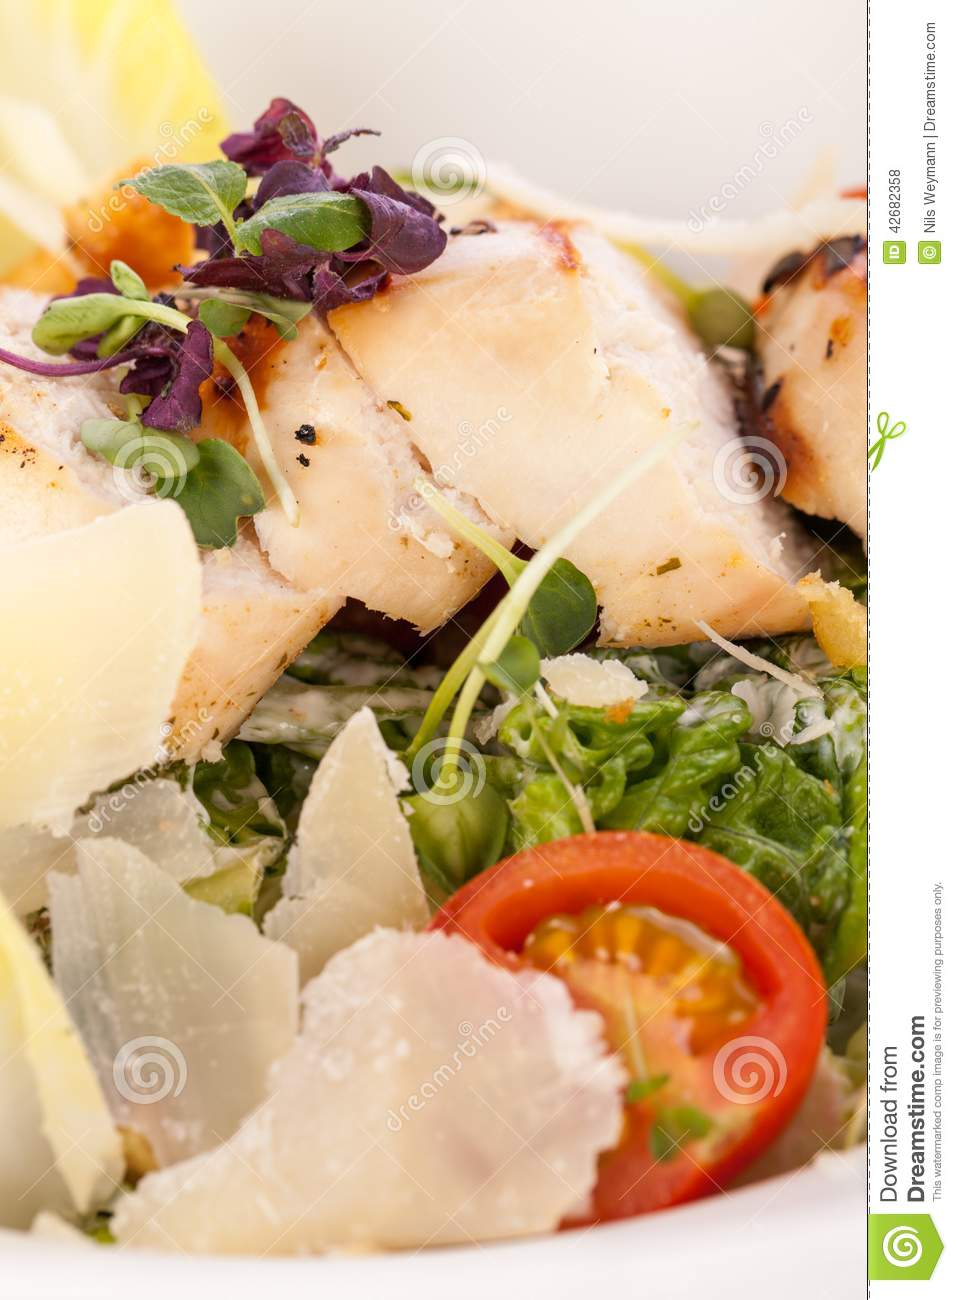 Tasty Fresh Caesar Salad With Grilled Chicken Parmesan And Croutons